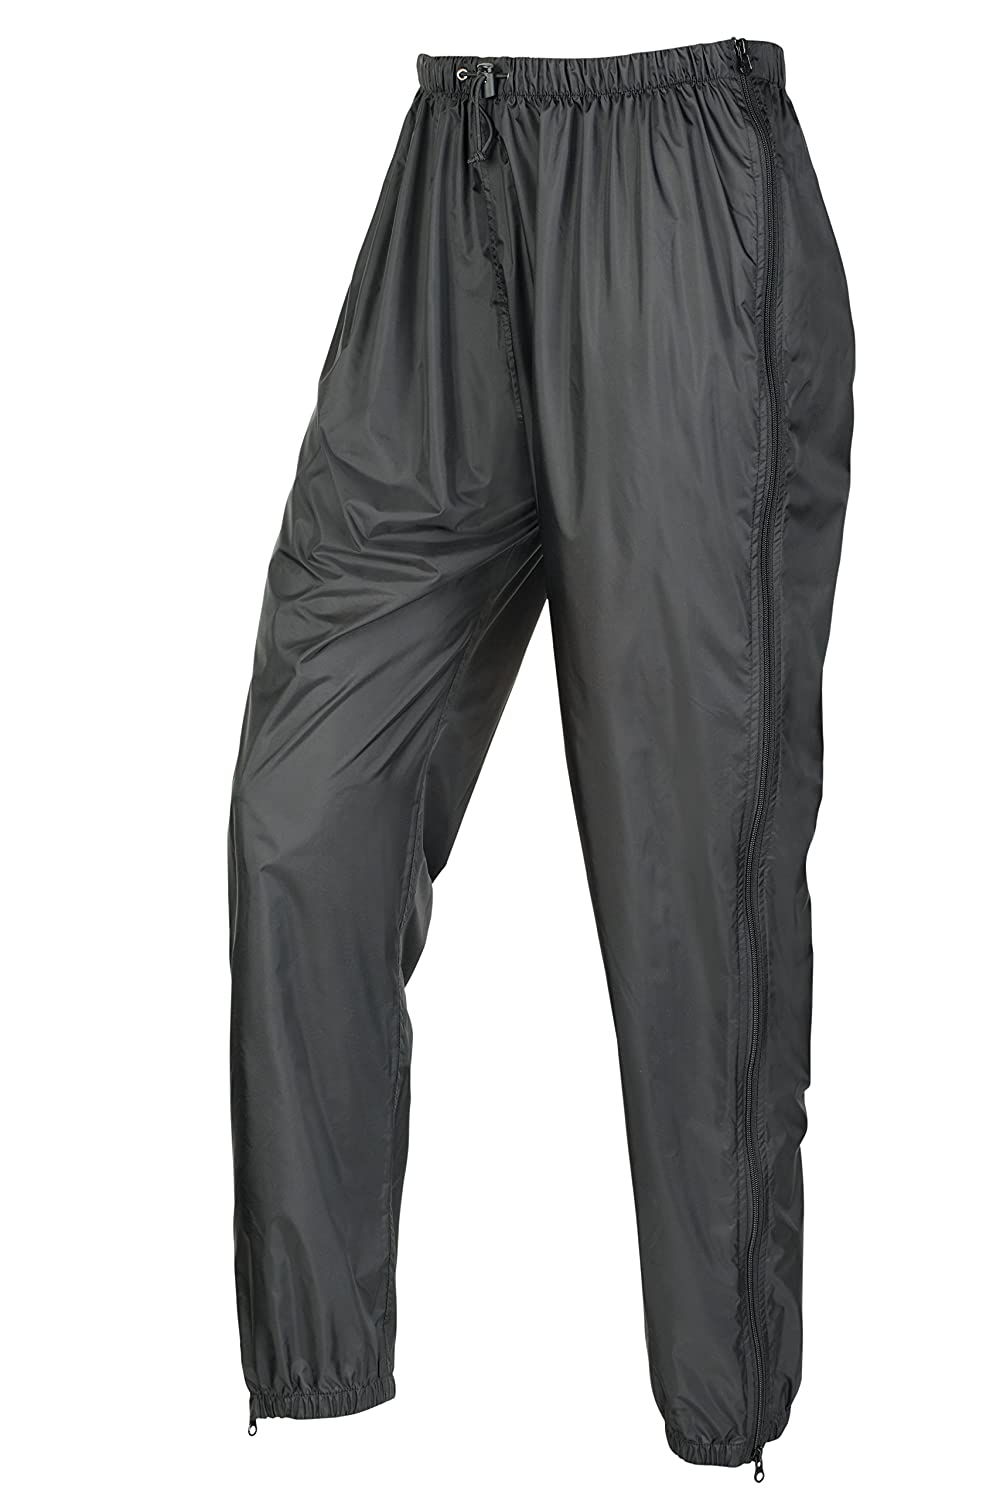 Ferrino Regenhose 'Zip Motion' - XS